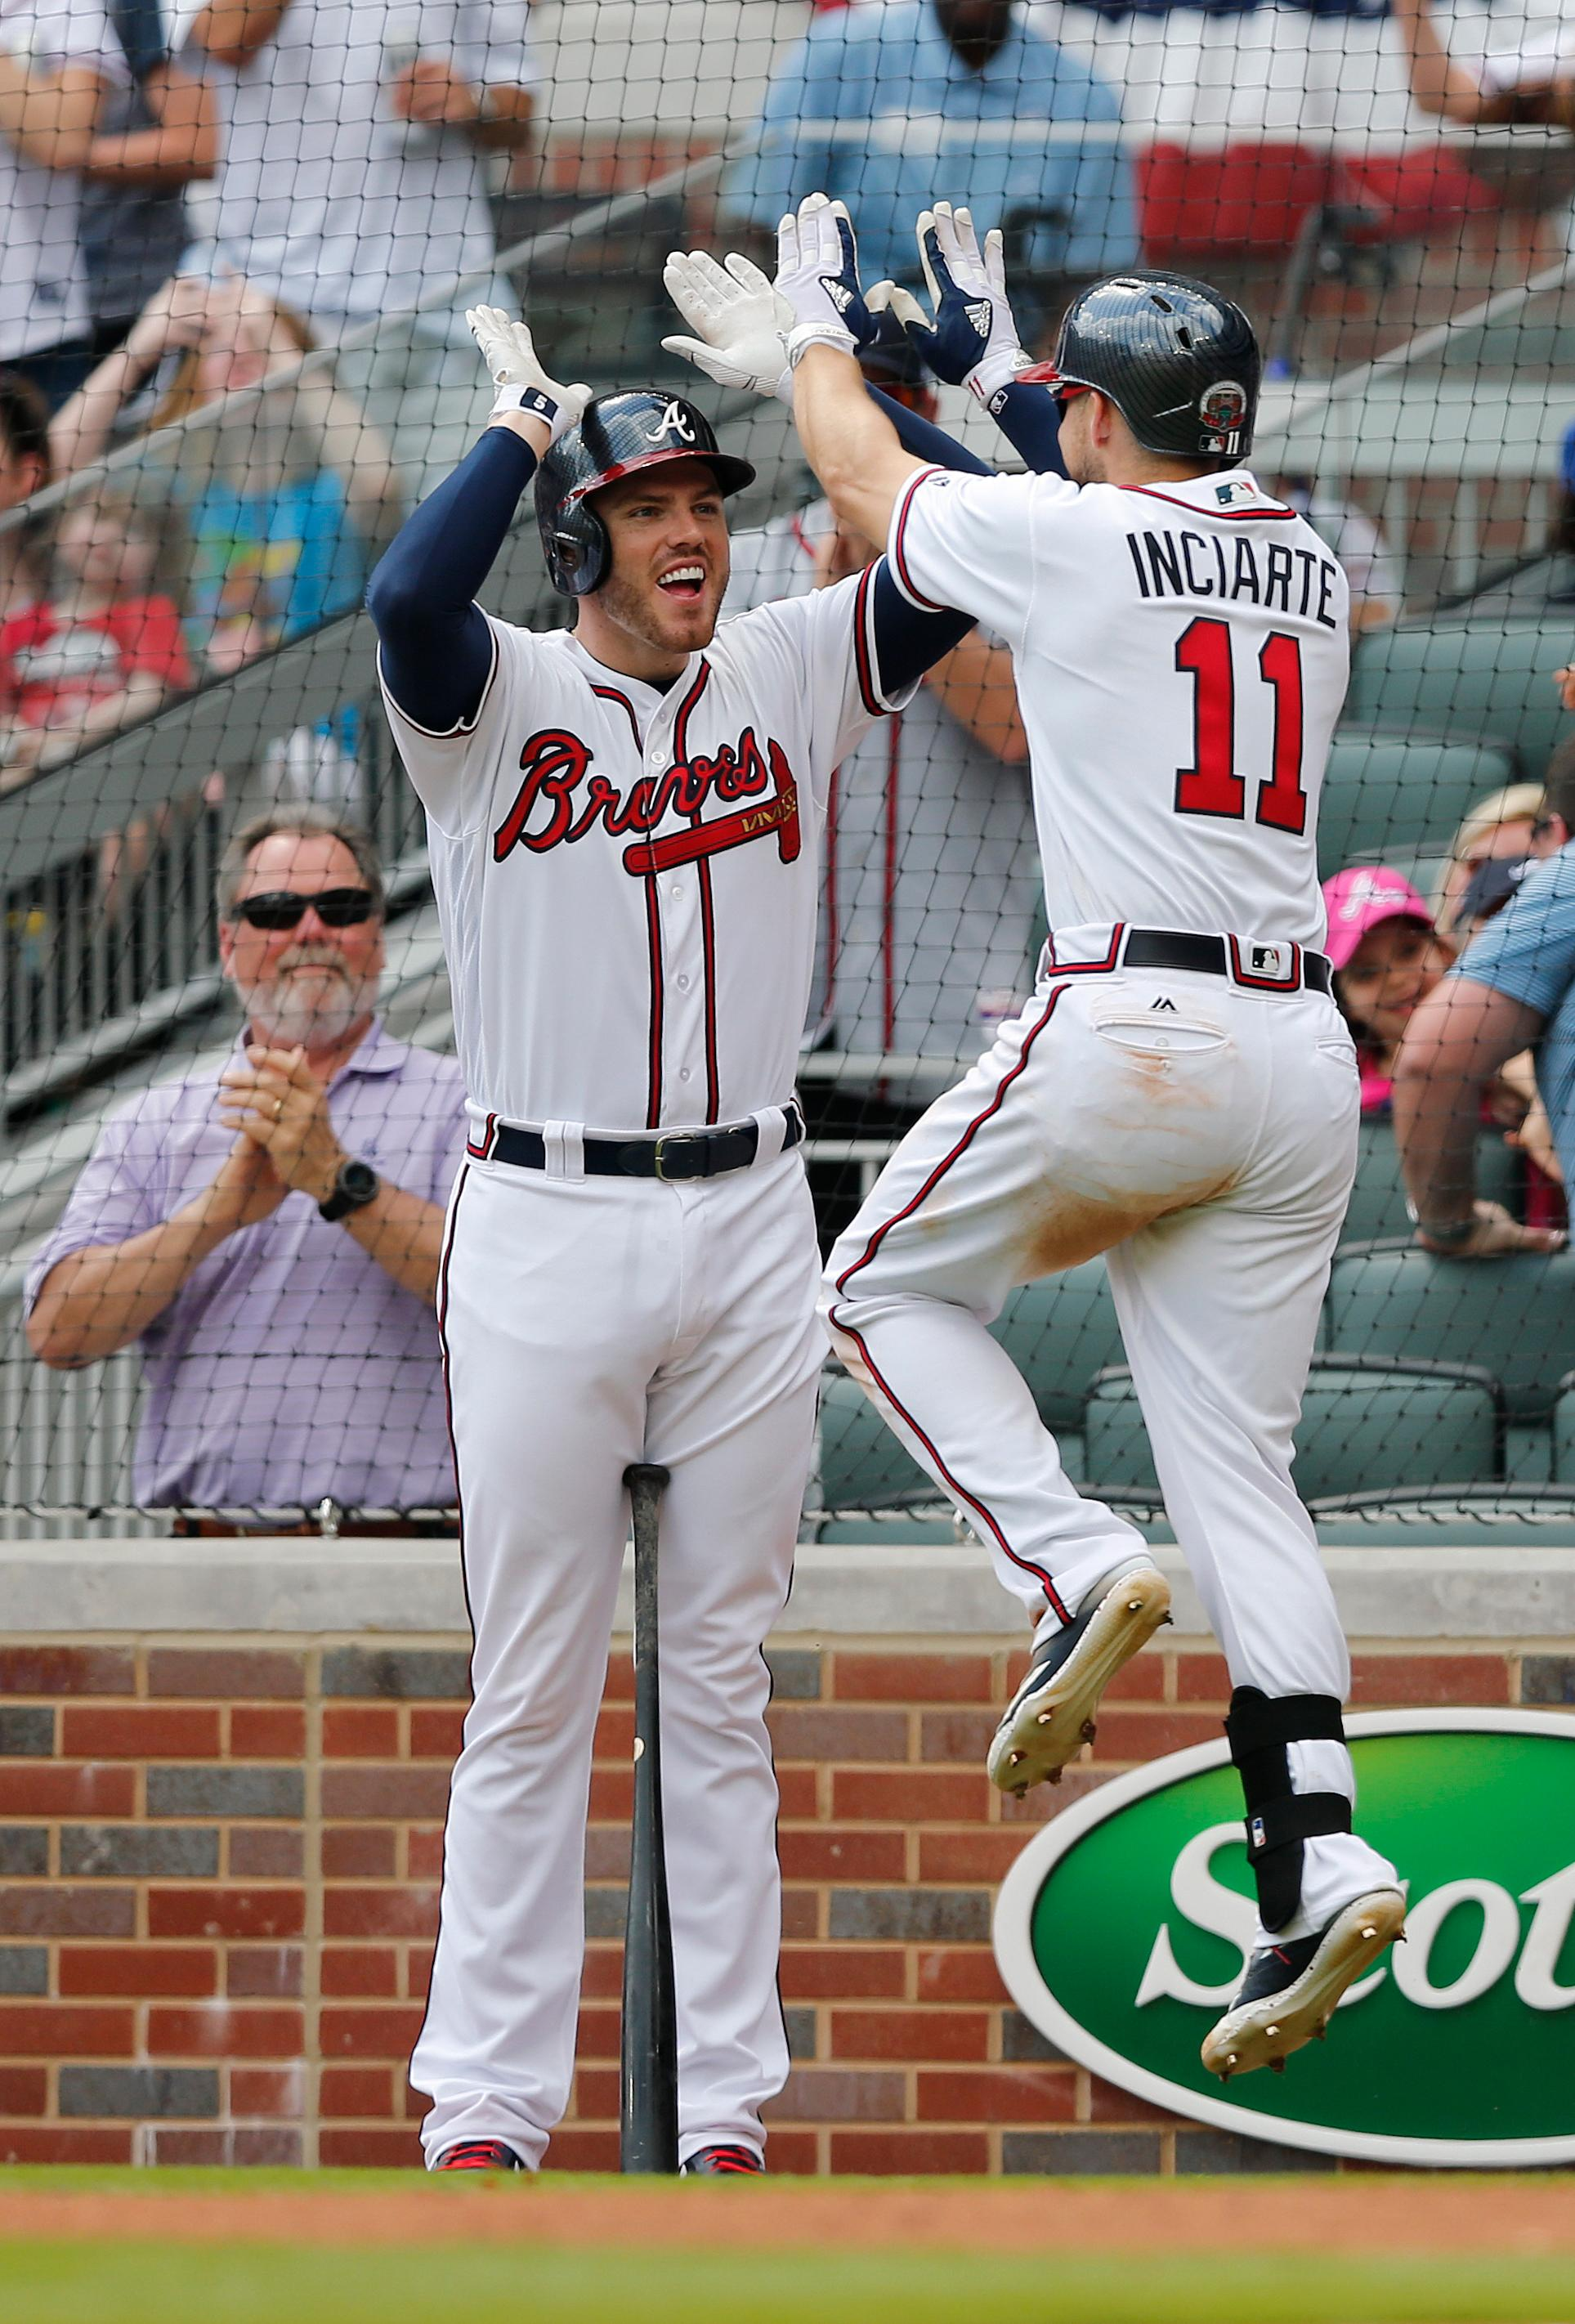 Atlanta Braves center fielder Ender Inciarte (11) celebrates with teammate Freddie Freeman after hitting a home run in the seventh inning of a baseball game against the San Diego Padres, Sunday, April 16, 2017, in Atlanta. Atlanta won 9-2. (AP Photo/John Bazemore)